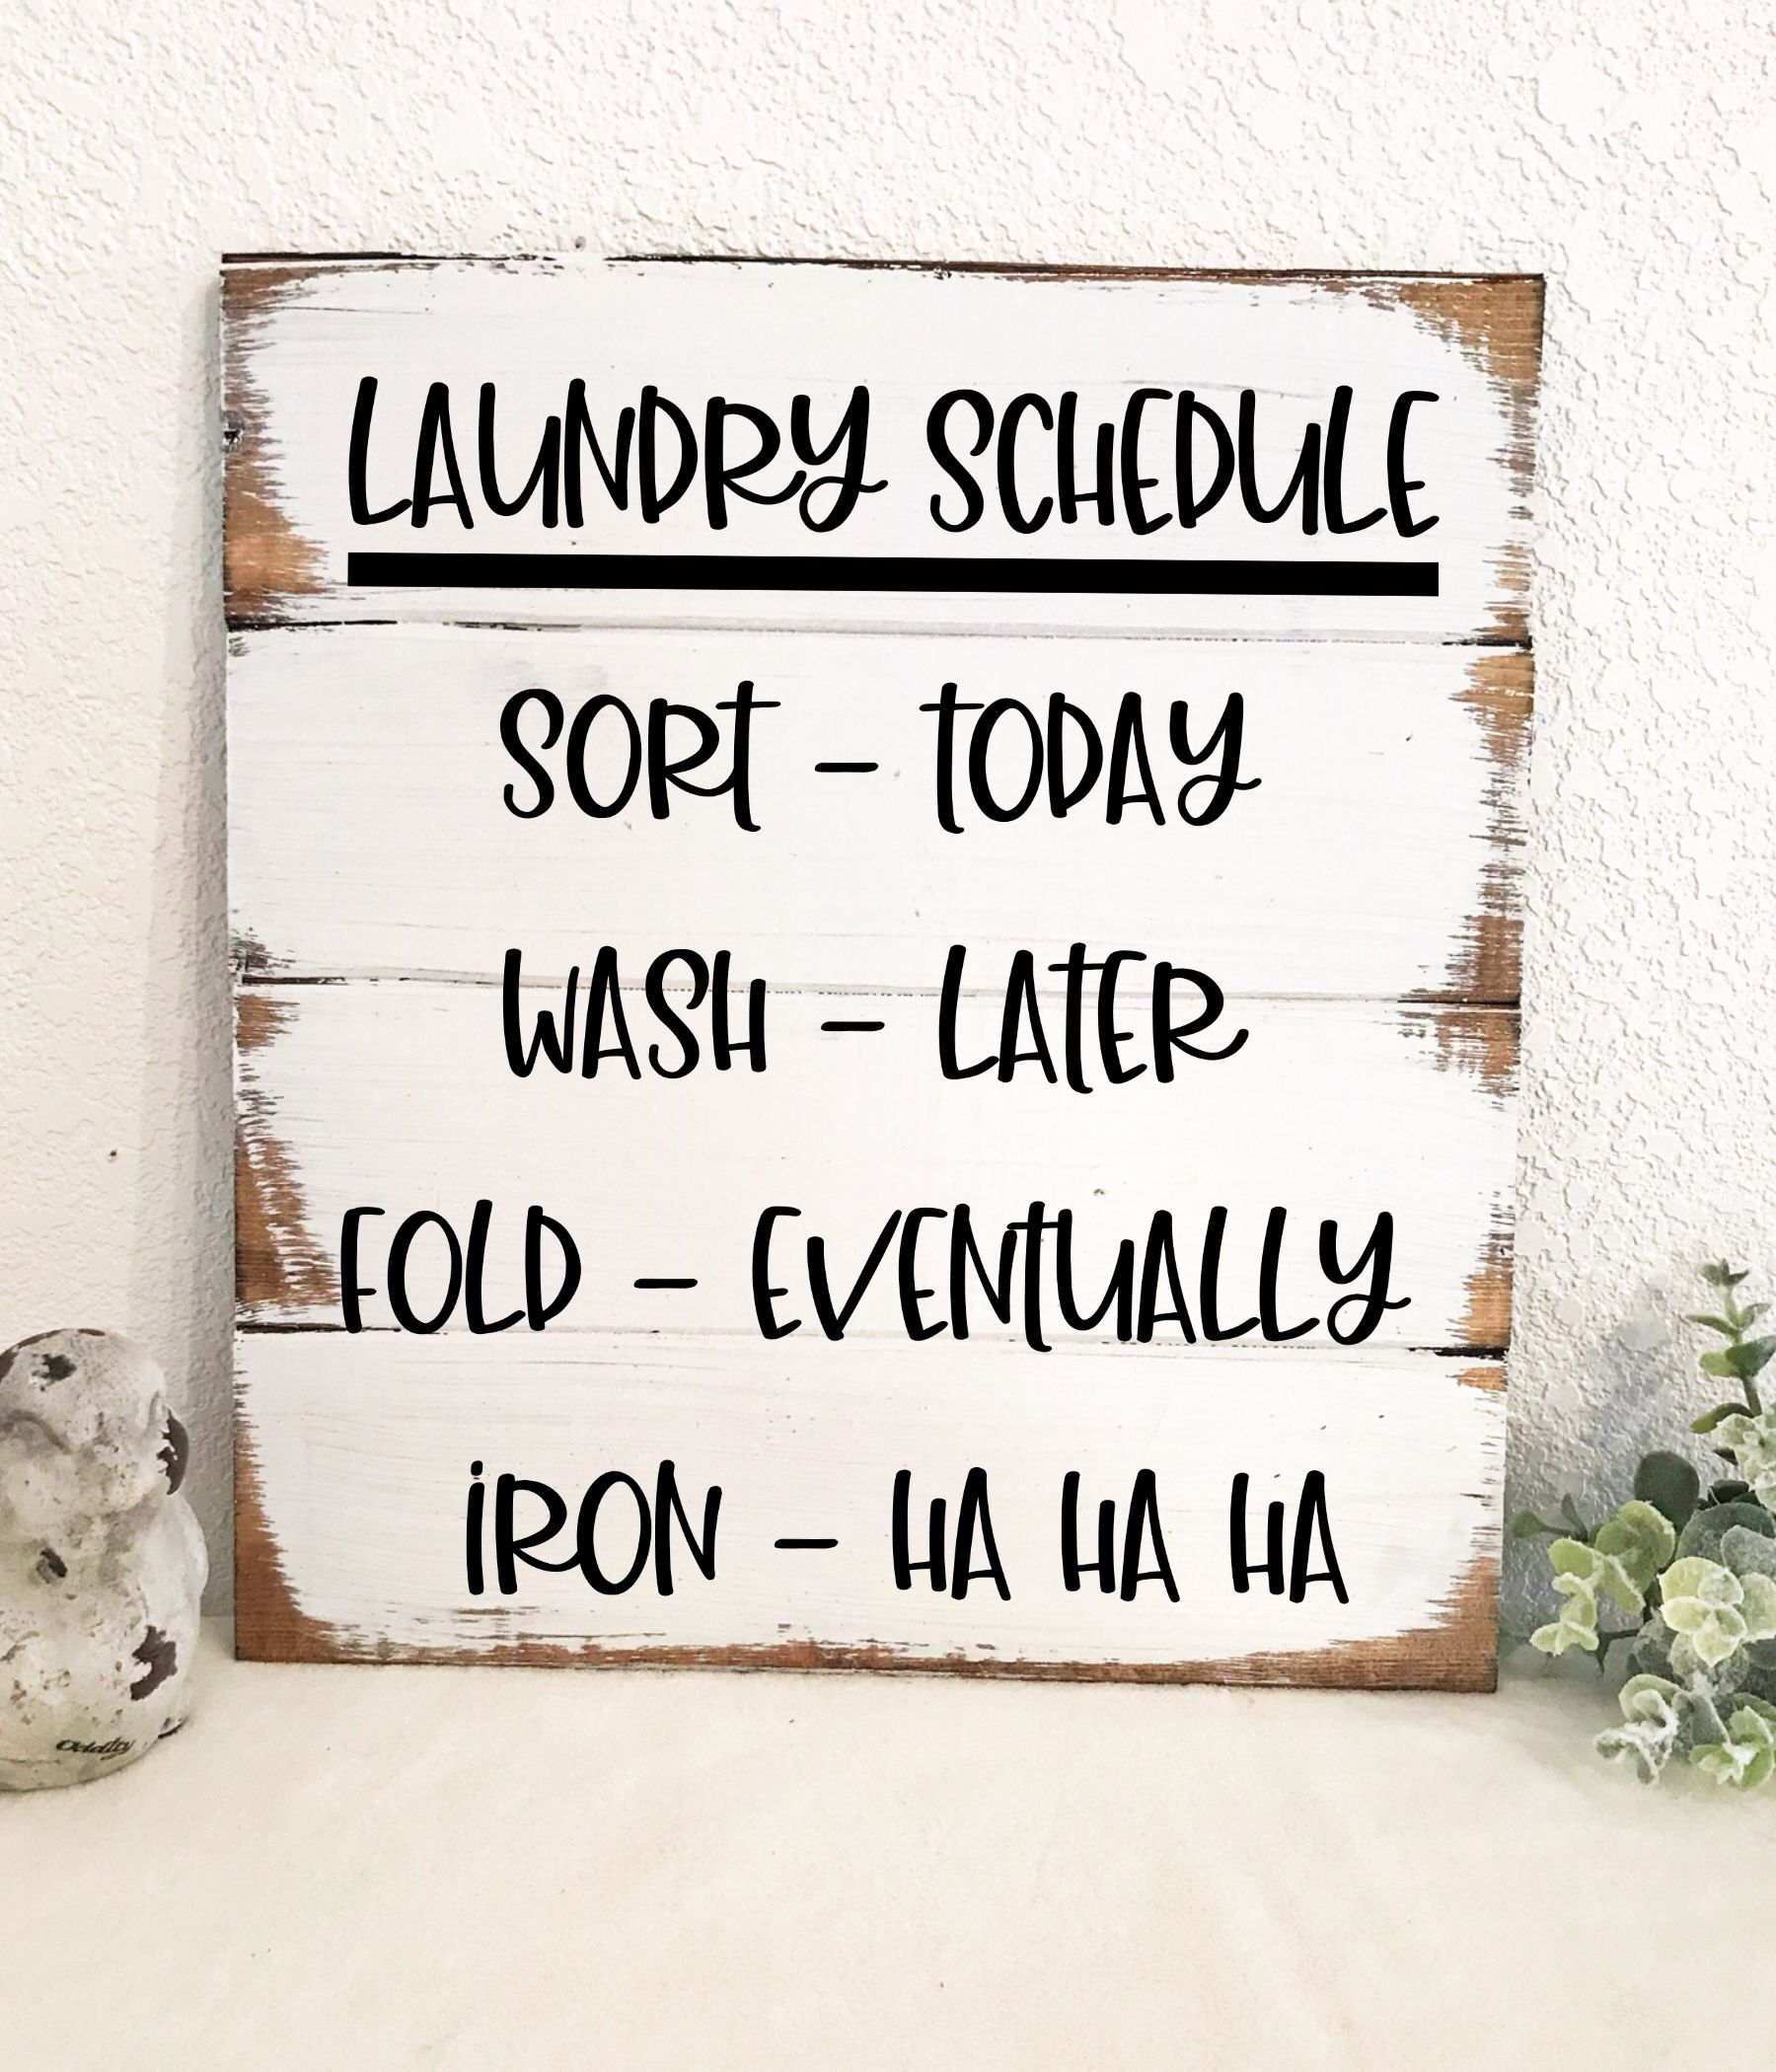 Laundry schedule sort today wash later fold